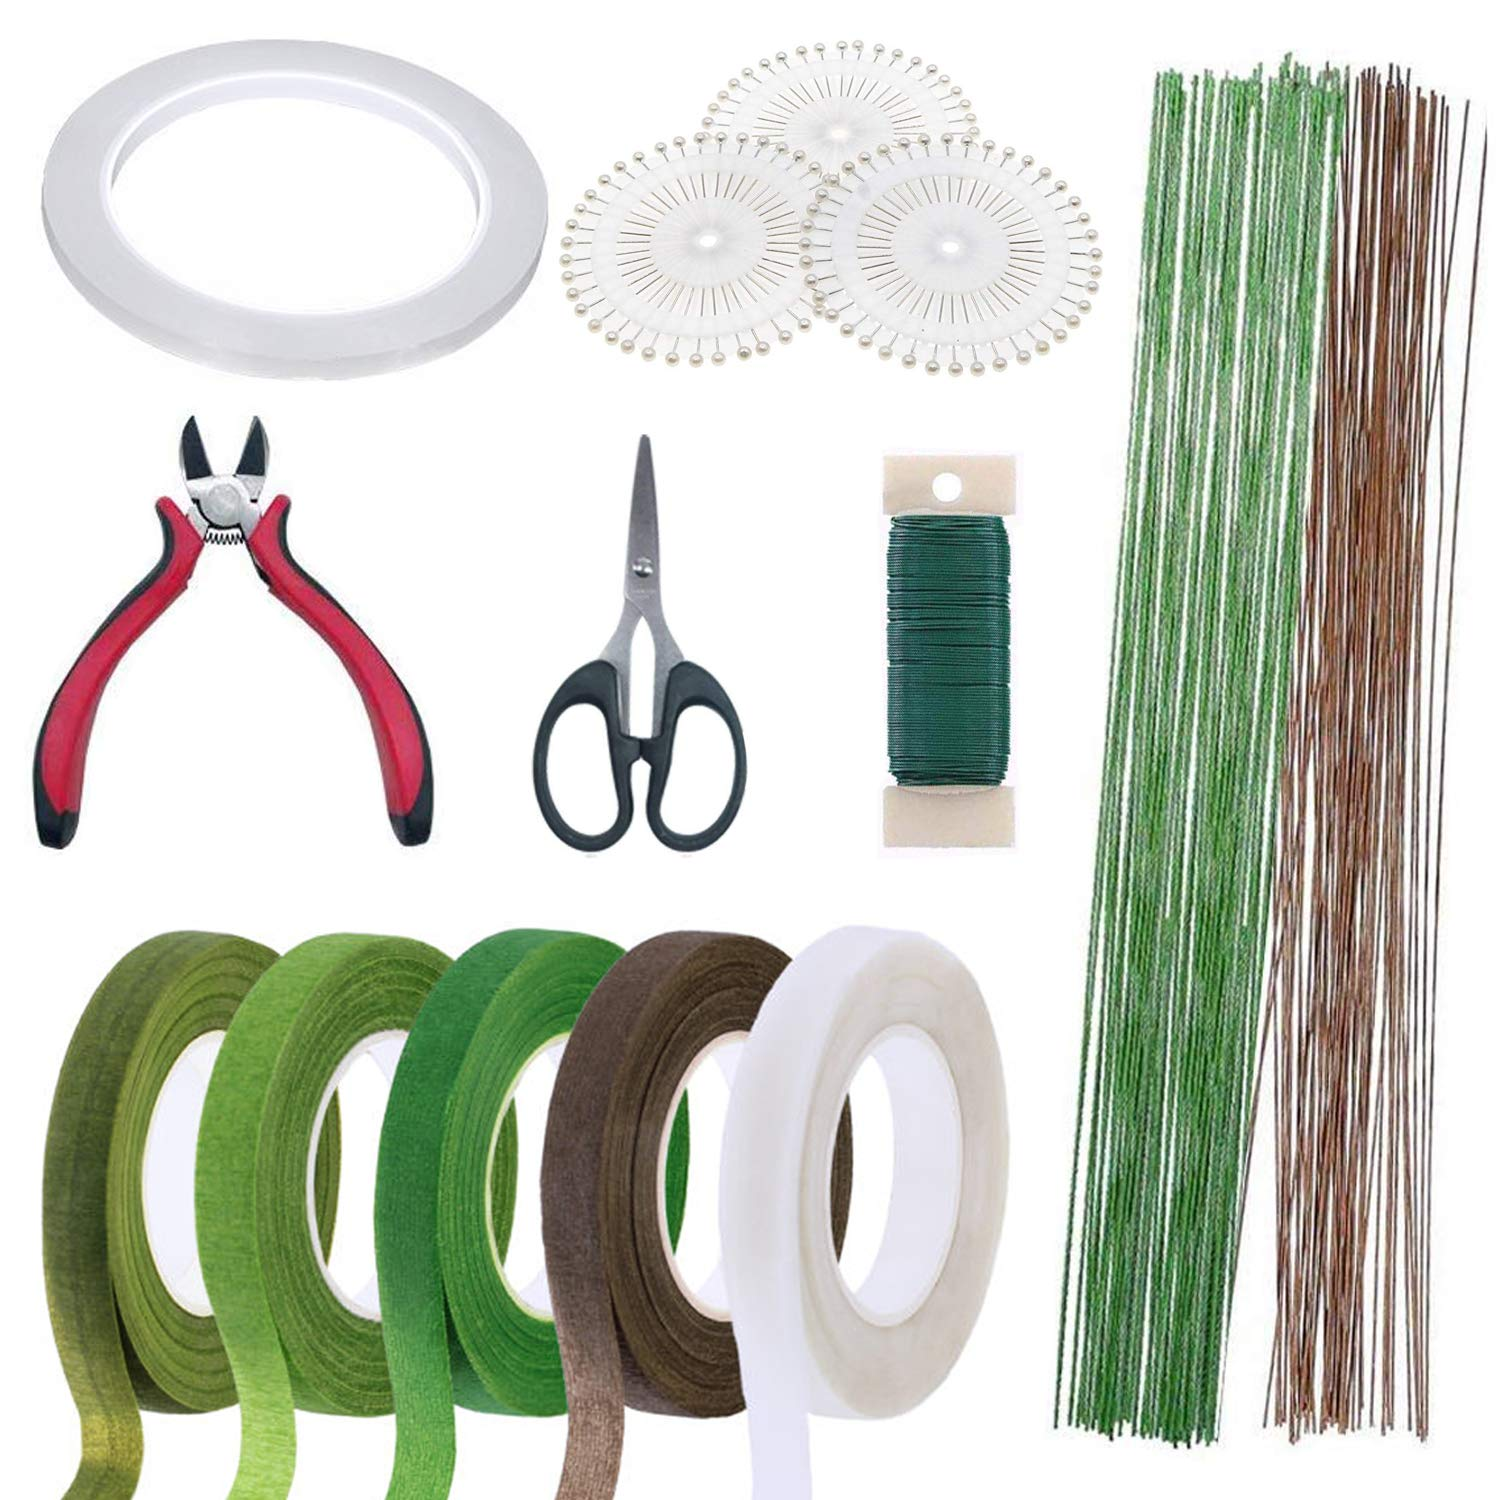 Floral Arrangement Tool Kit, Woohome 2 Style Tape Stem Wrap, 2 Style Floral Wire, Wire Cutter, Scissors and Head Pins for Wedding Bouquet DIY